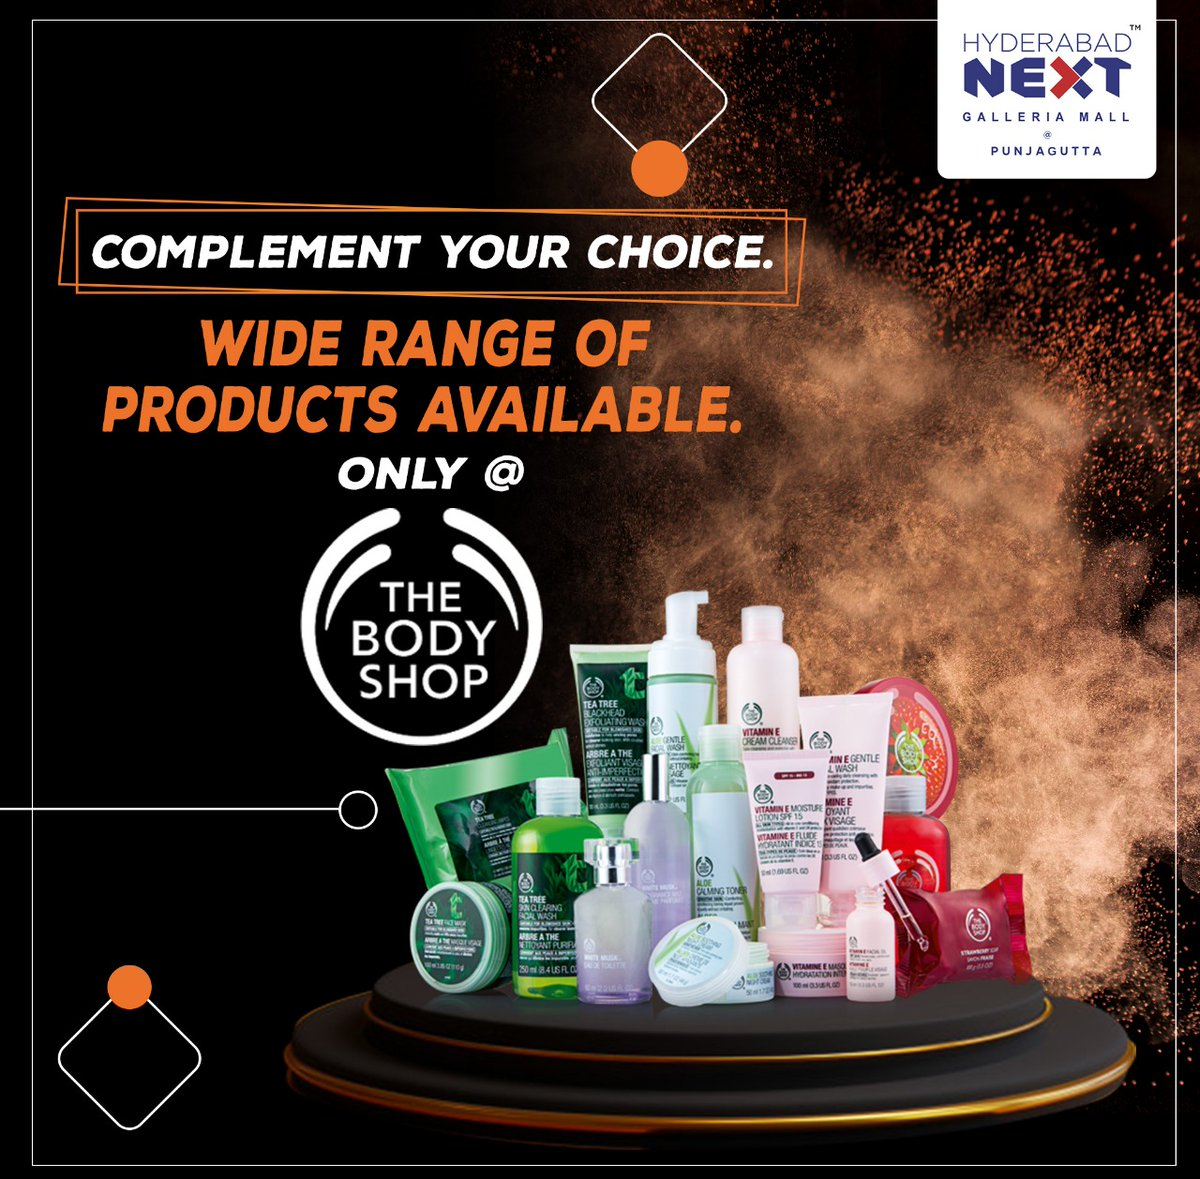 Complement your choice Wide range of products available at The Body Shop Visit Hyderabad Next Galleria Mall @ Punjagutta  #BodyShop #Punjagutta #TheBodyShopIndia  #GrabNow #Hurry